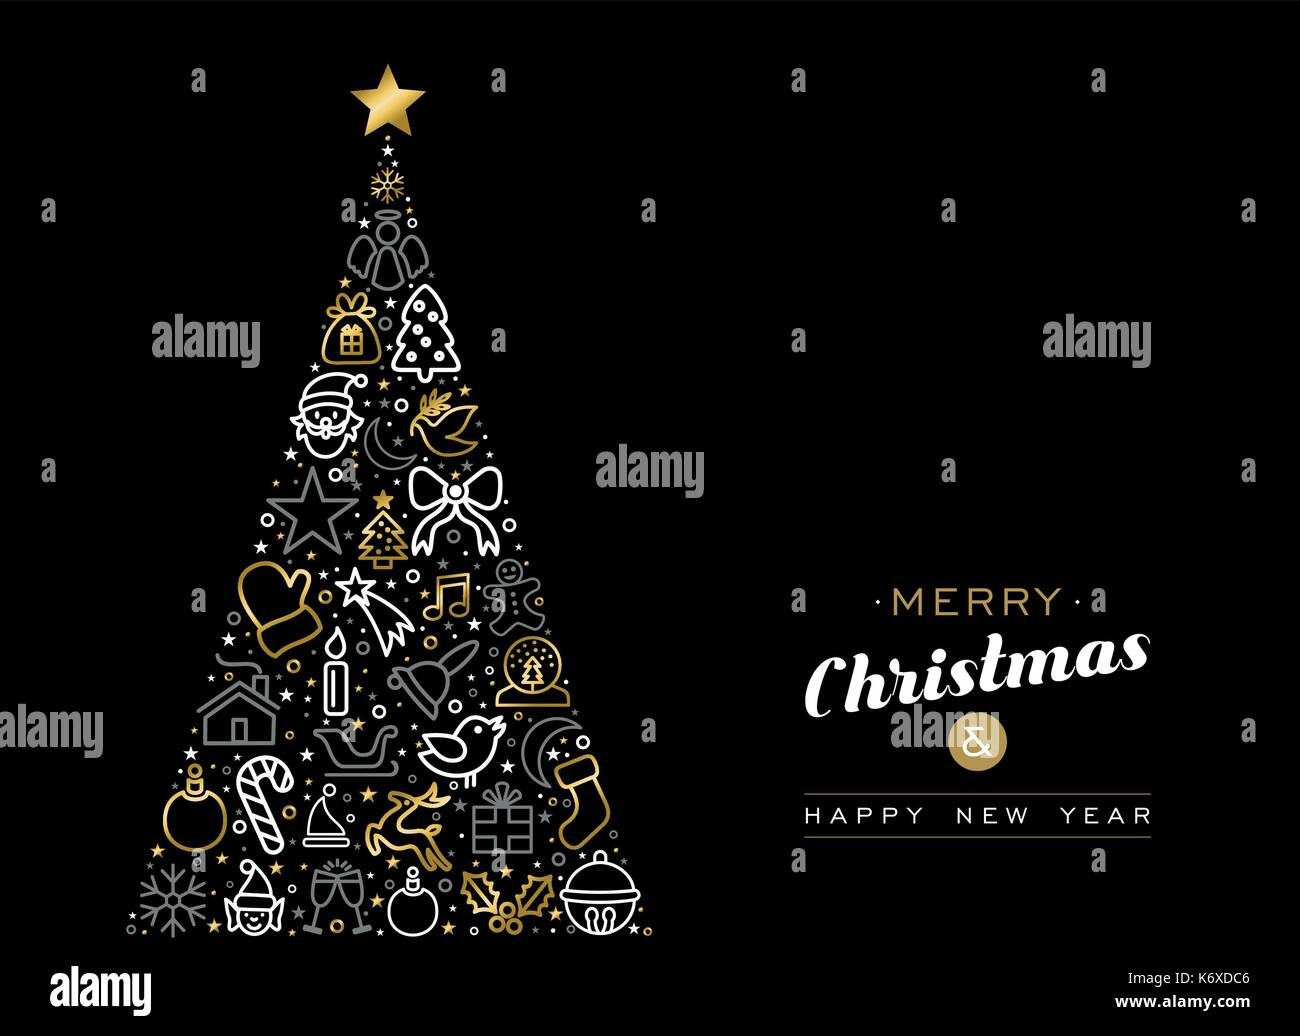 Merry Christmas And Happy New Year Greeting Card Design Gold